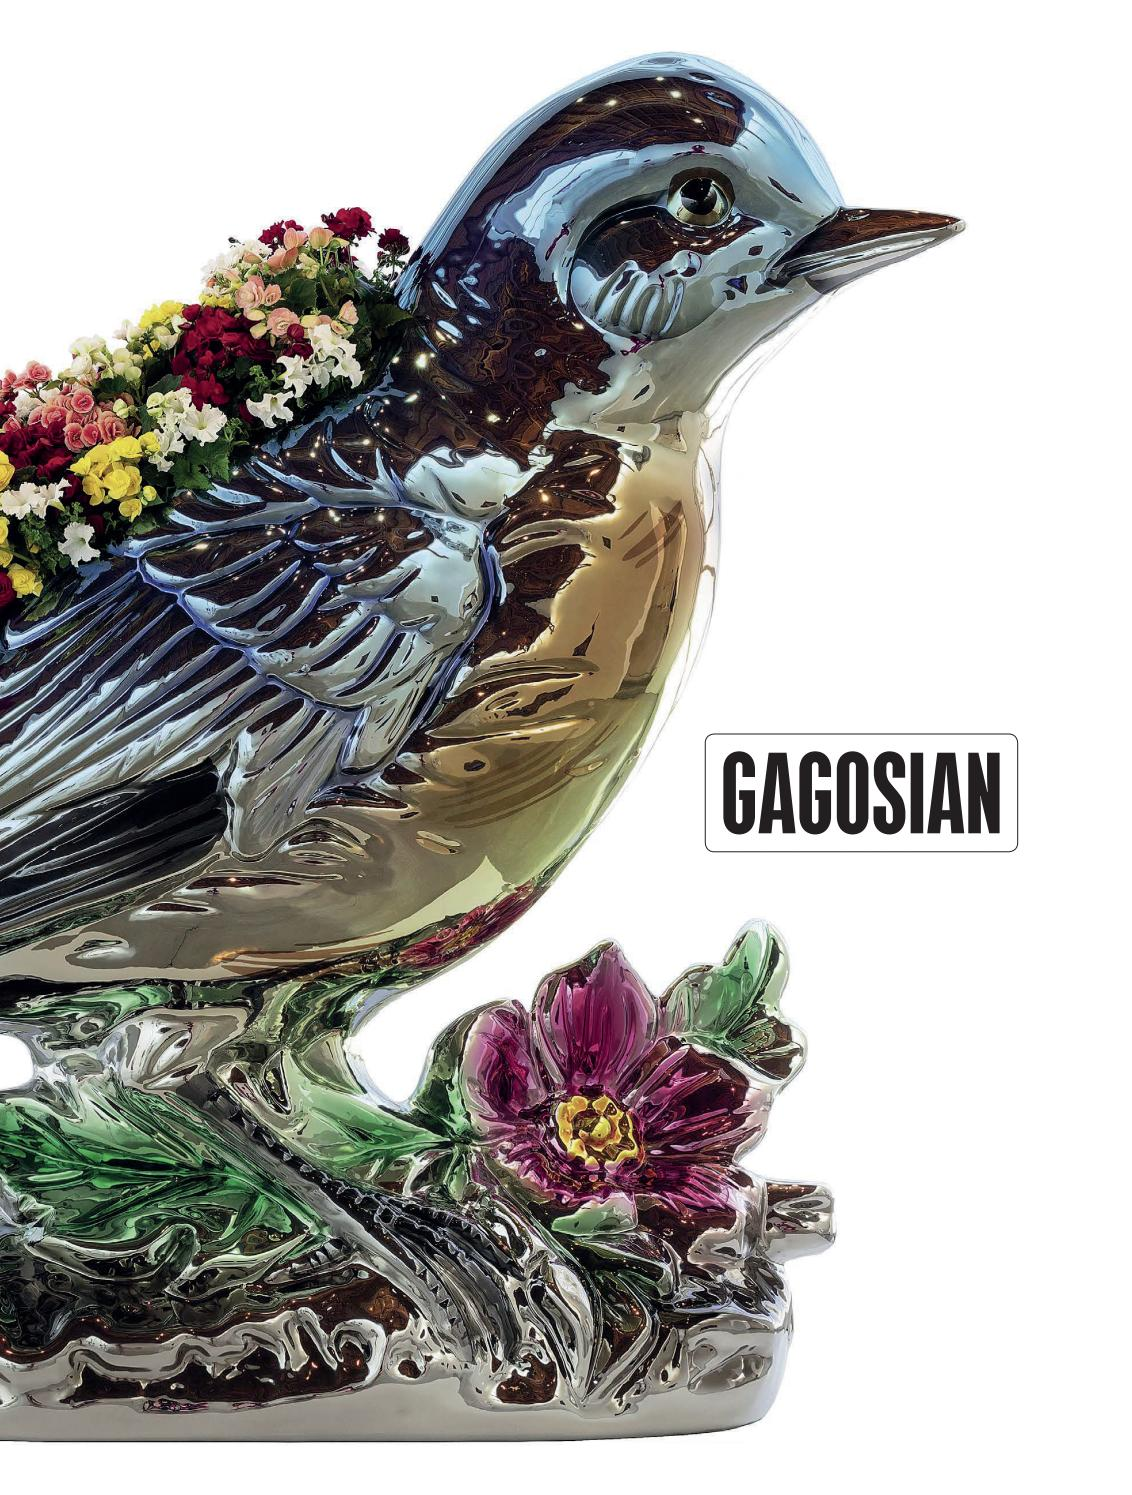 Gagosian Quarterly Winter 2017 By